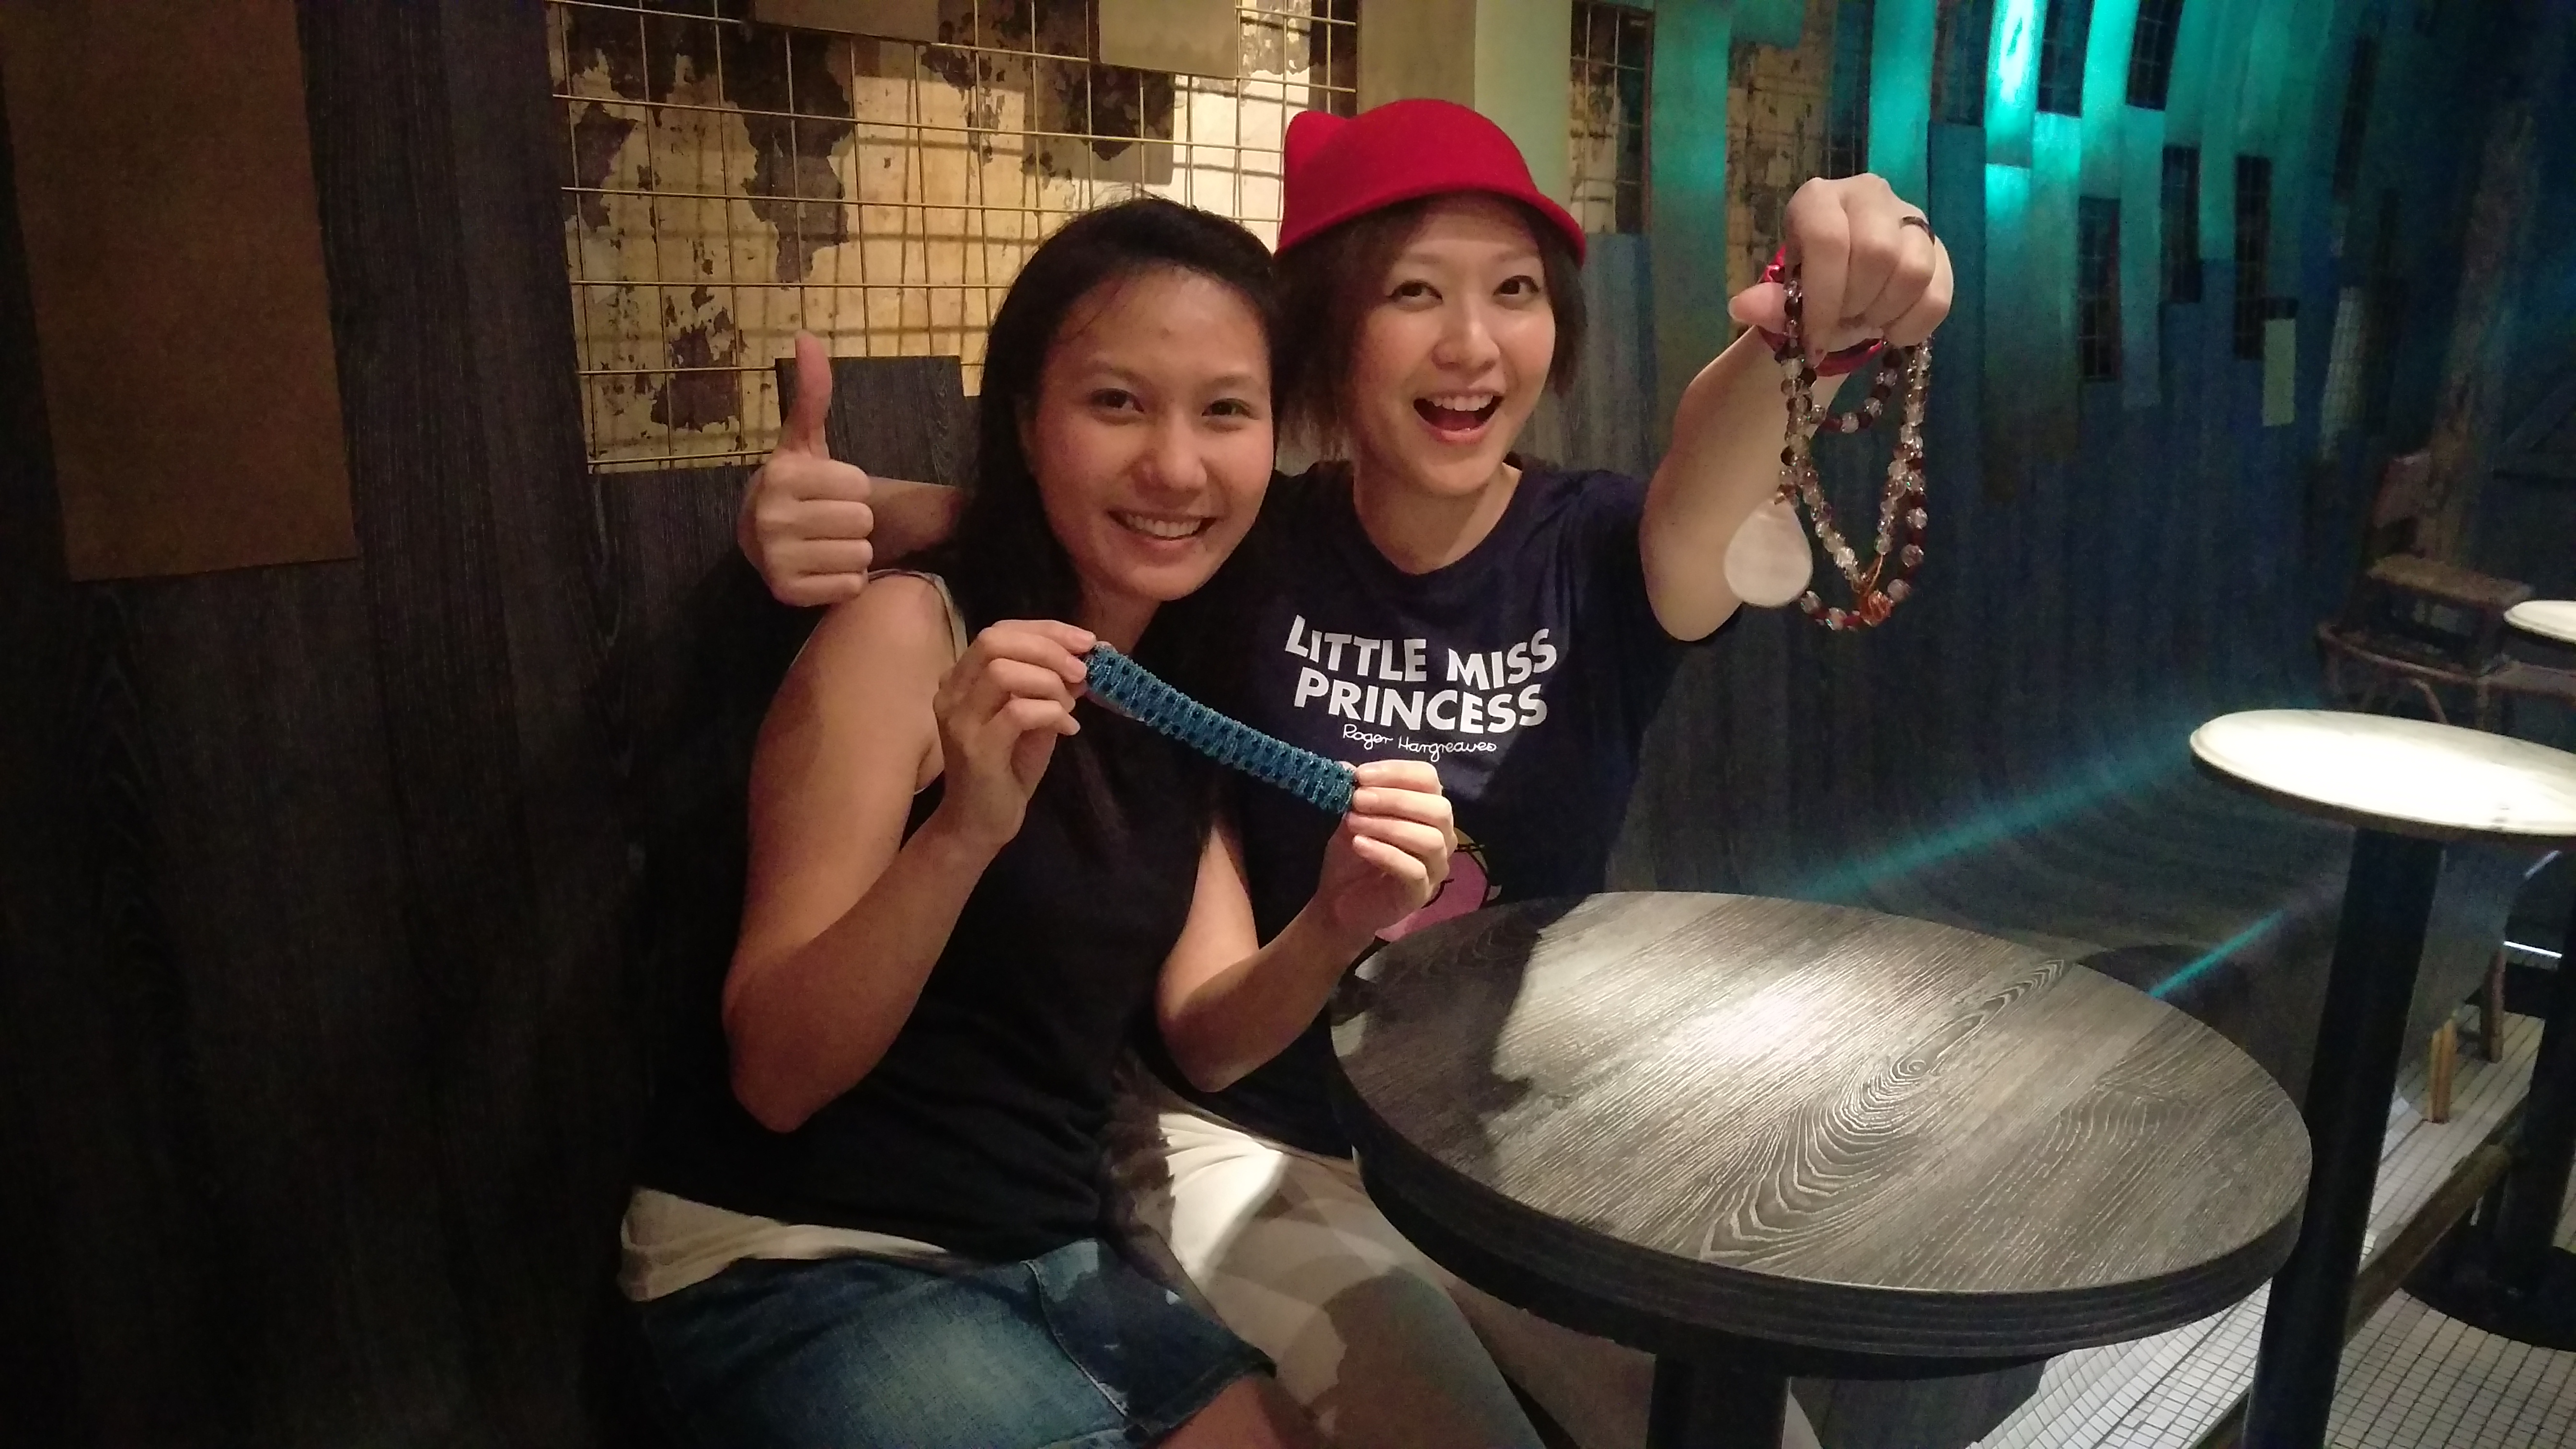 Ann and yours truly with our handmade jewelry